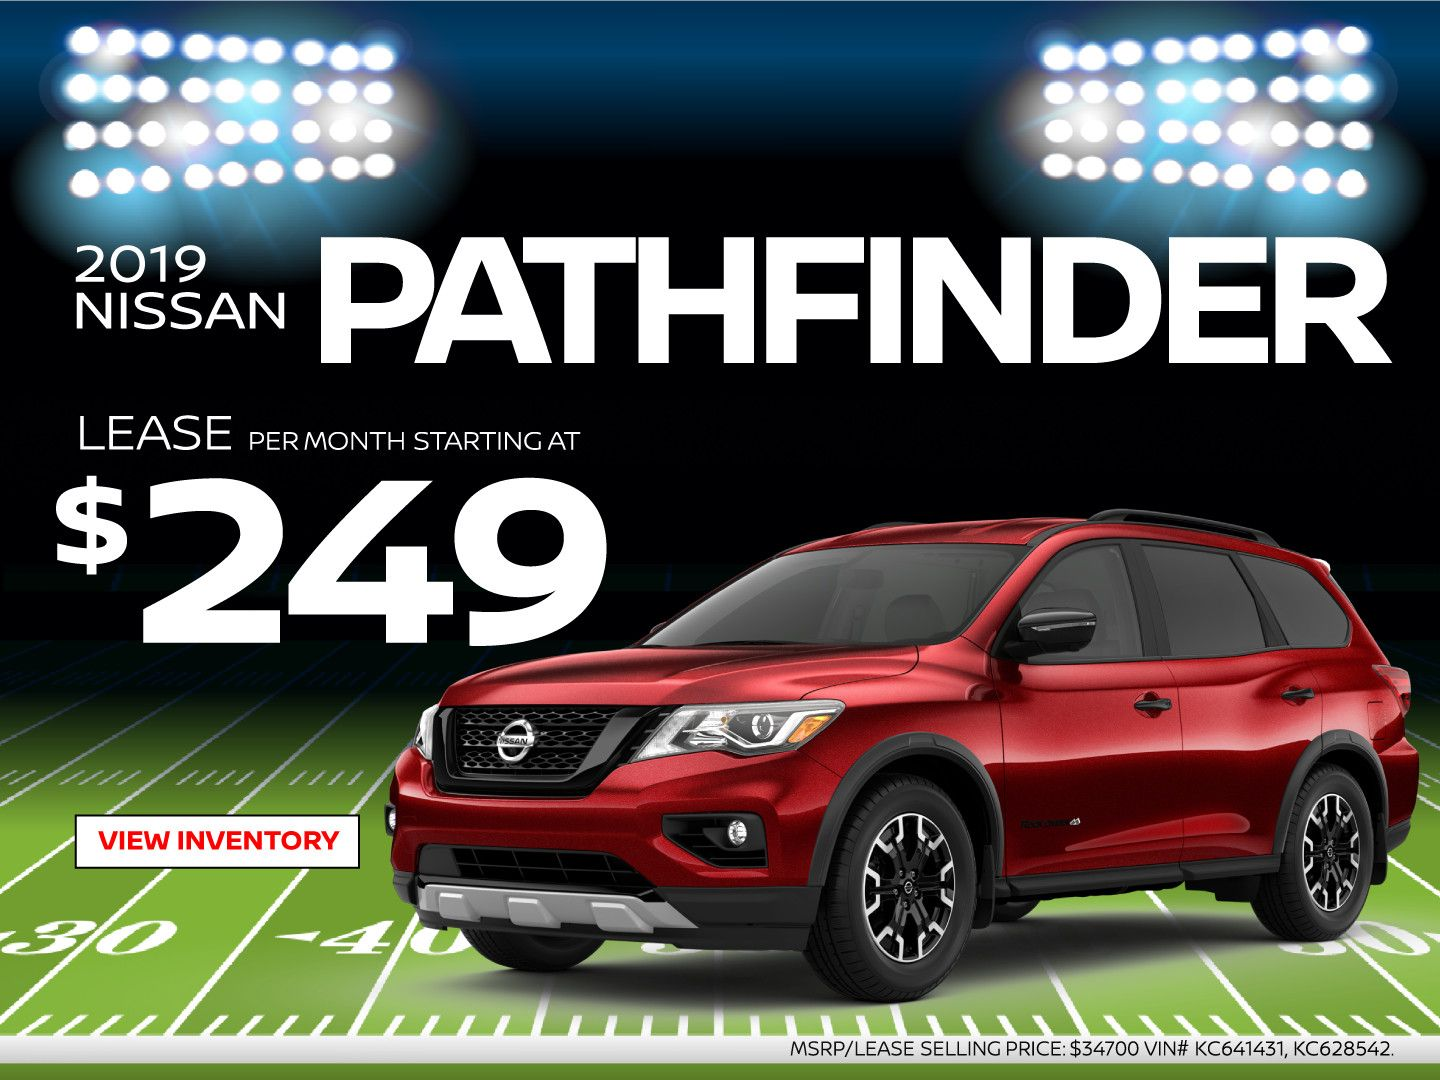 2019 Nissan Pathfinder Lease Special Nissan Pathfinder Nissan Lease Specials